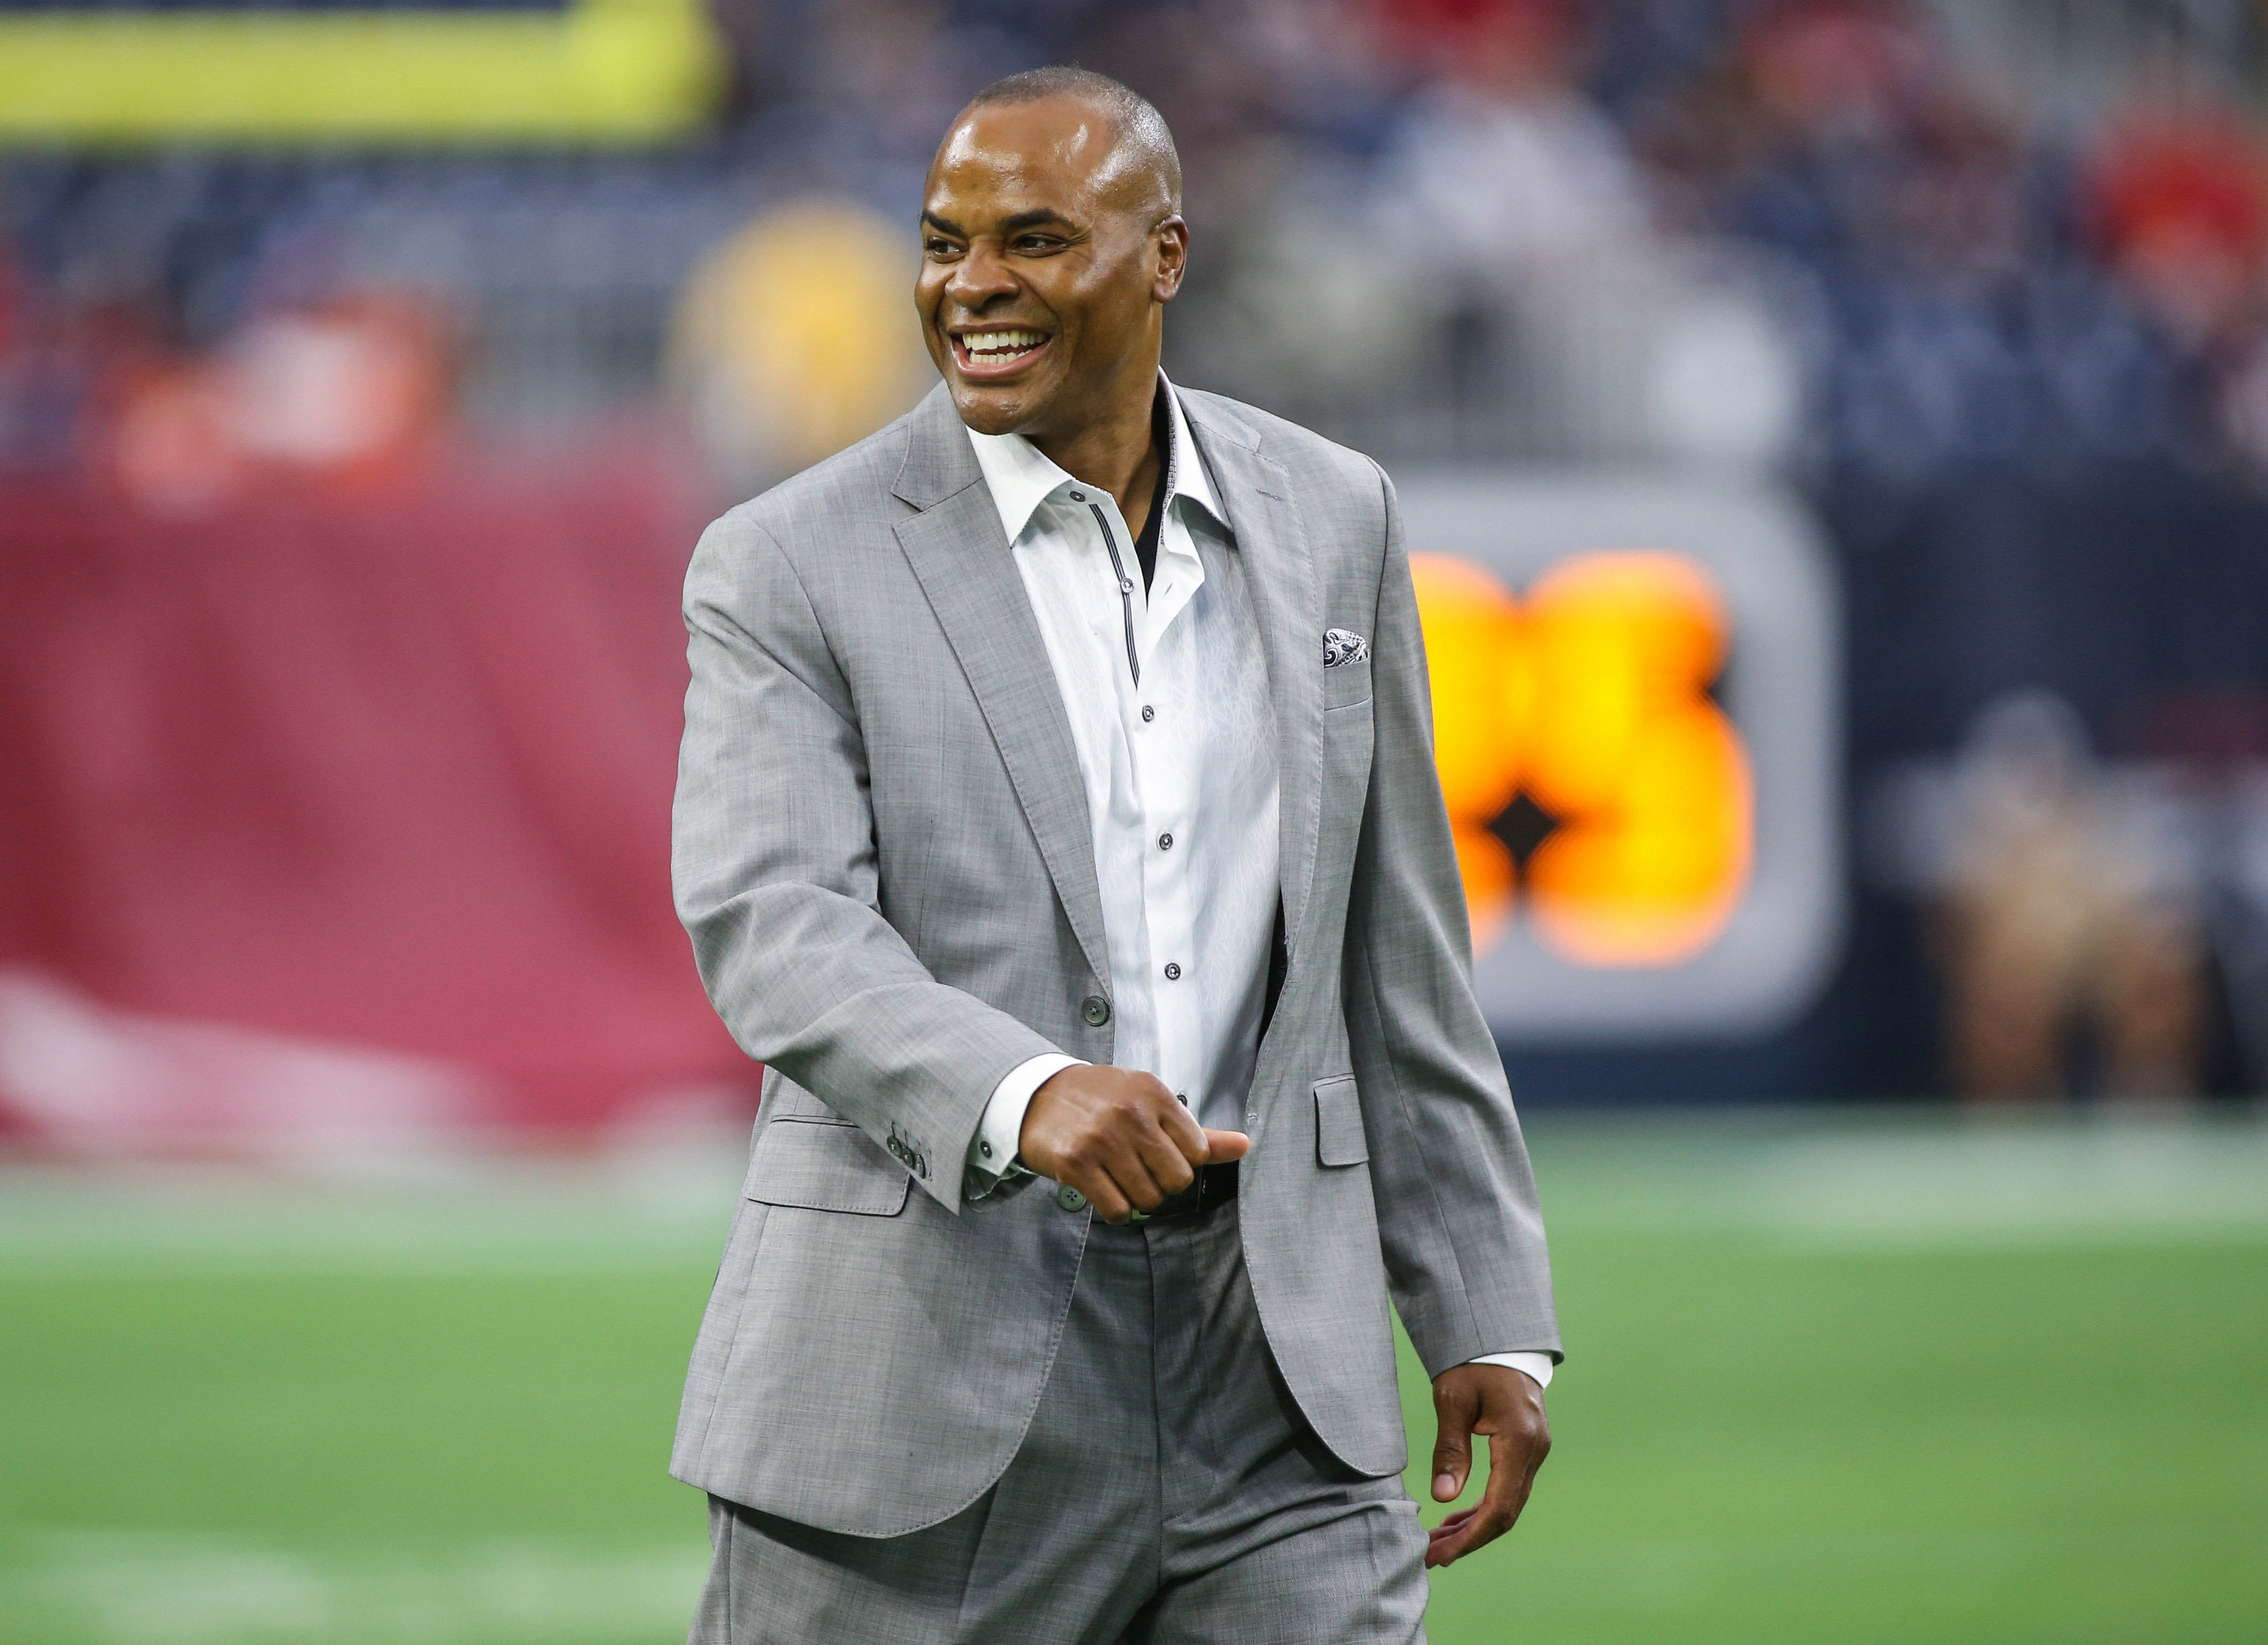 How amazing is it that Rick Smith eschewed accountability when it came to Ryan Mallett?